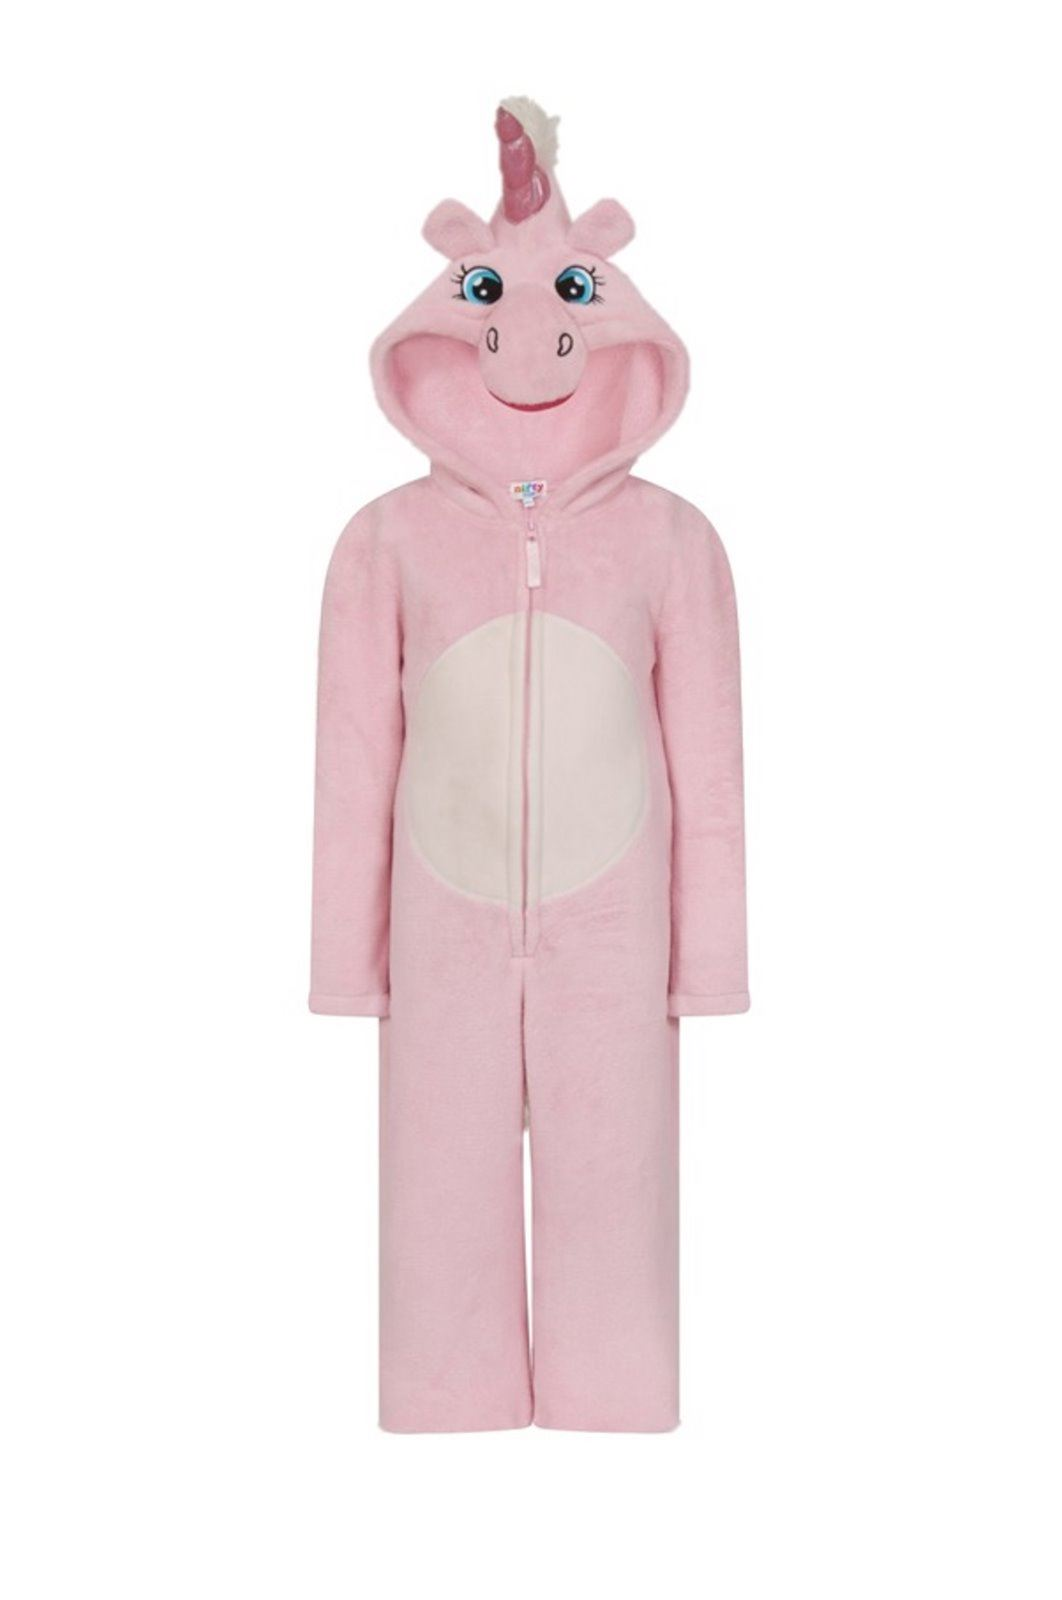 Childrens-Fleece-Hooded-All-In-One-Piece-Jumpsuit-Pyjamas-Pajama-Age-3-13 thumbnail 6